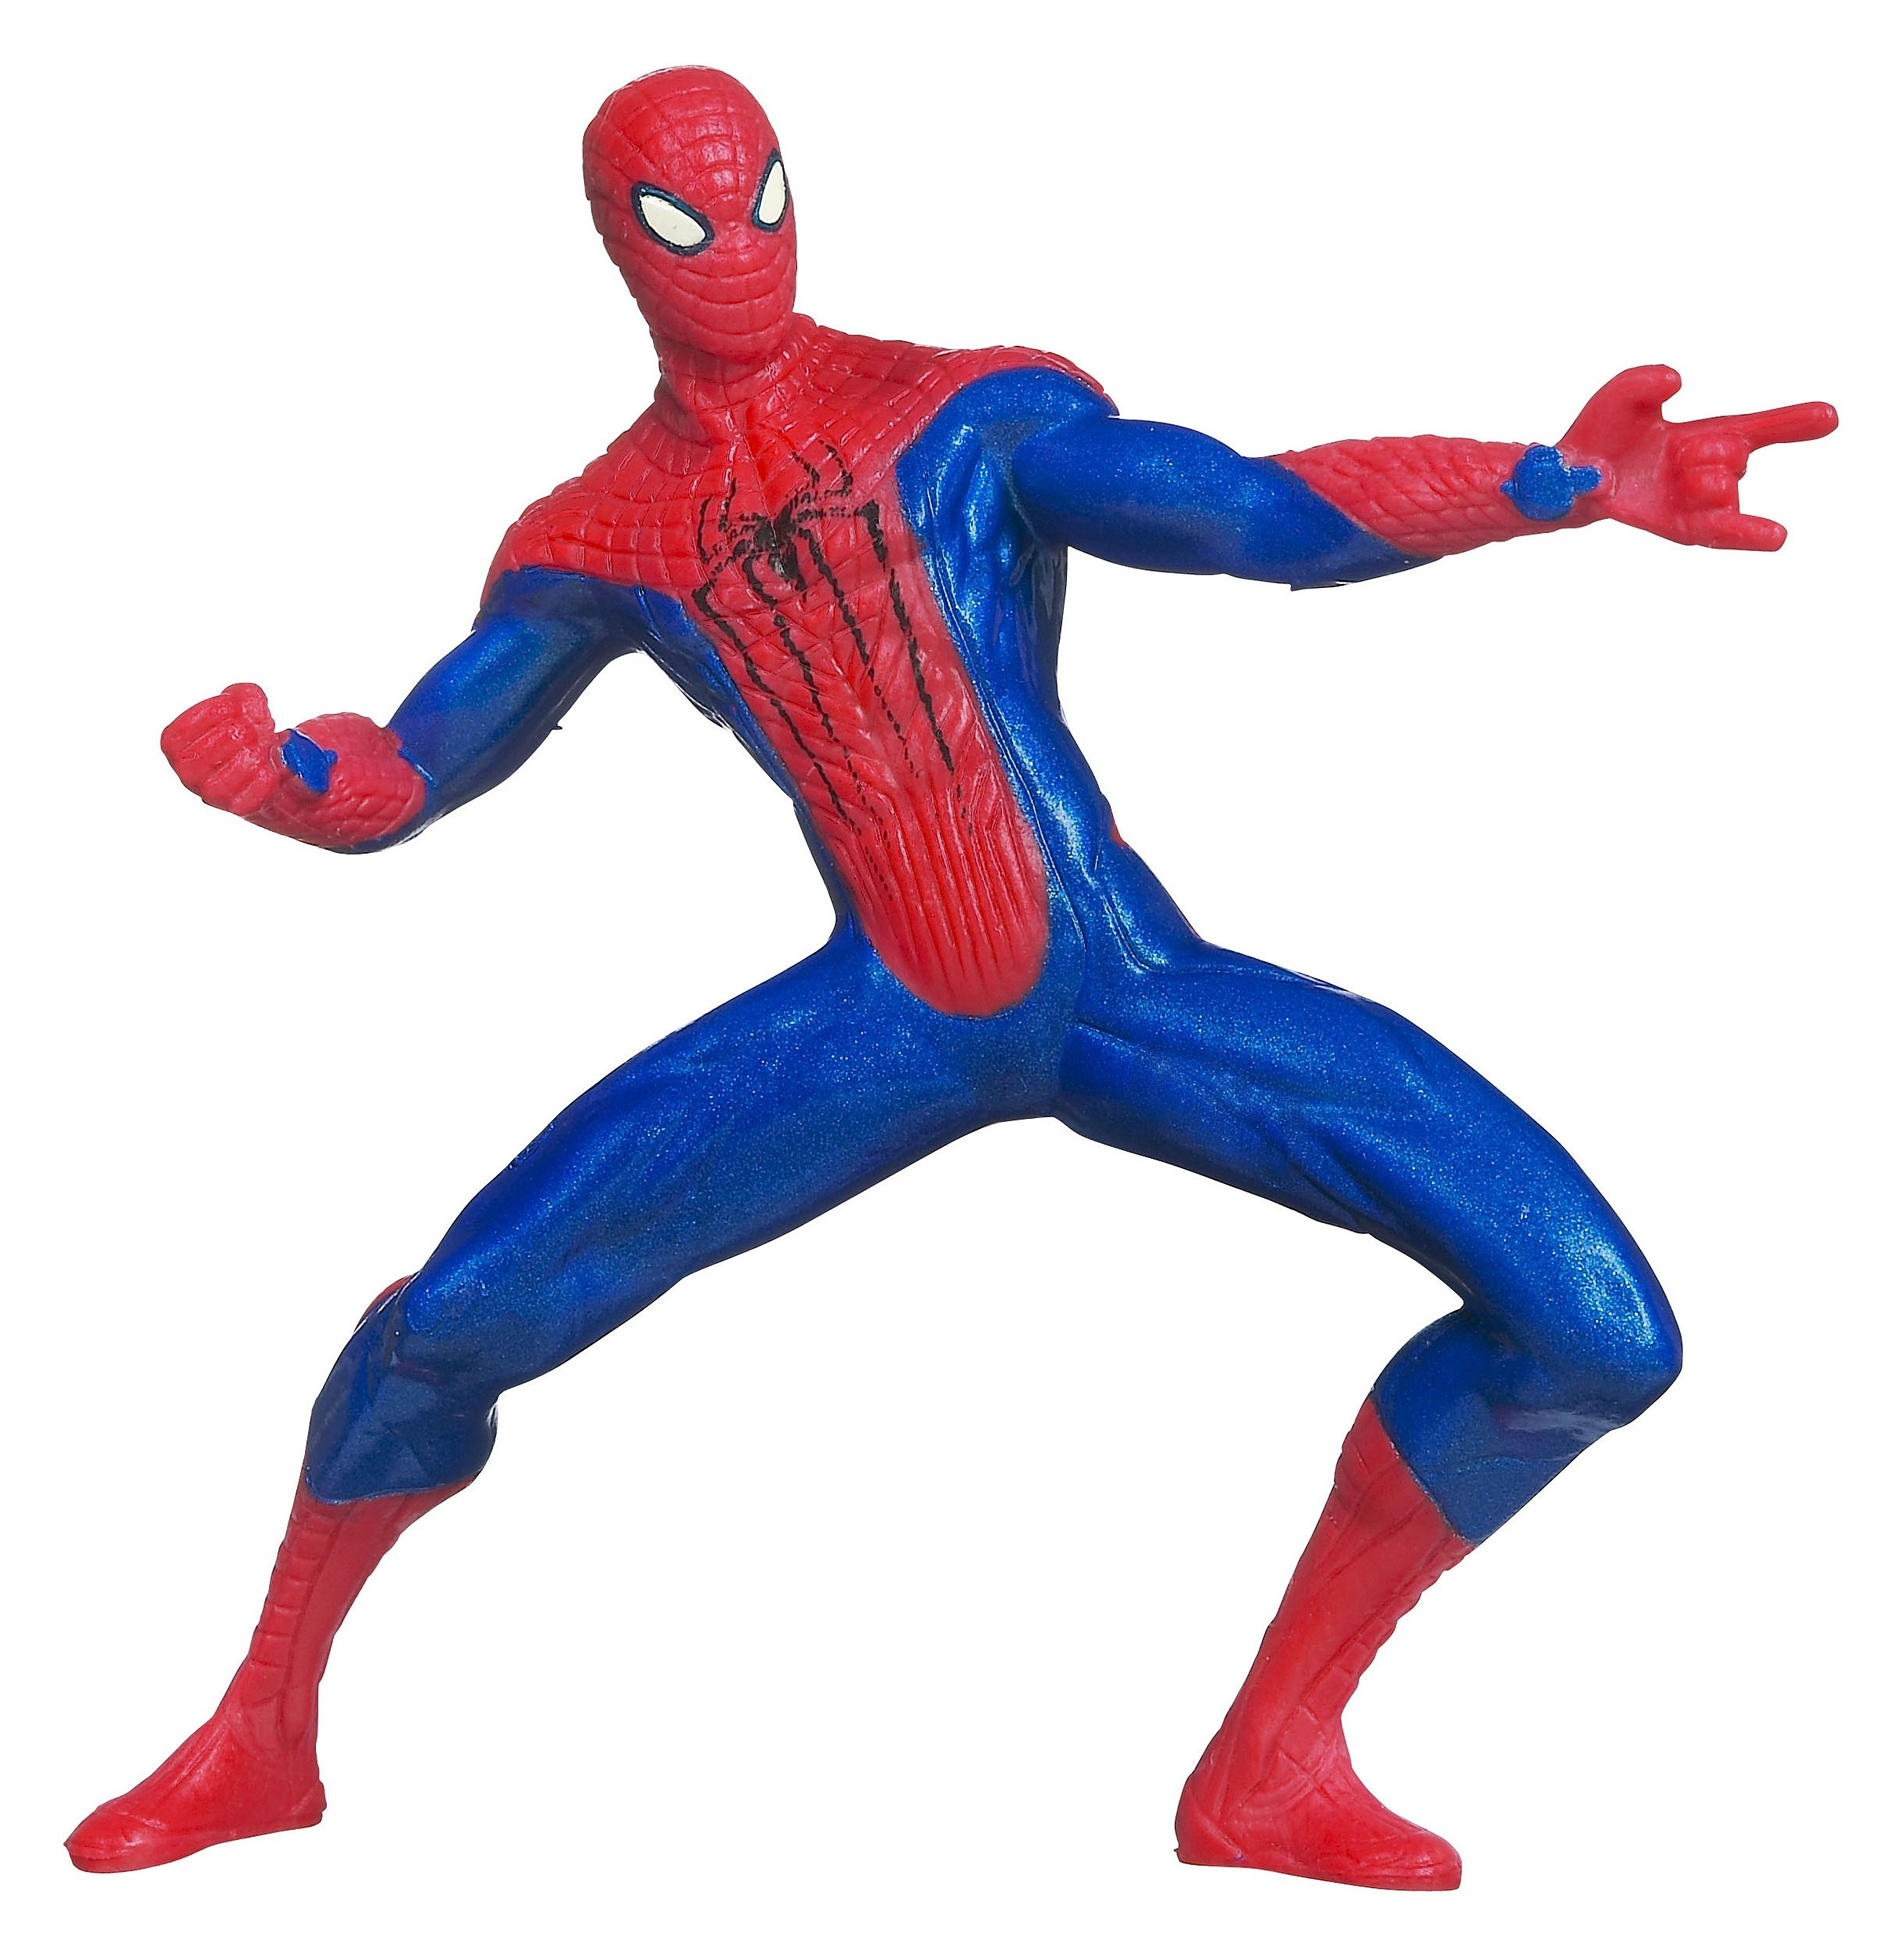 Spider Man Toys : 'the amazing spider man movie toy images arrive fair